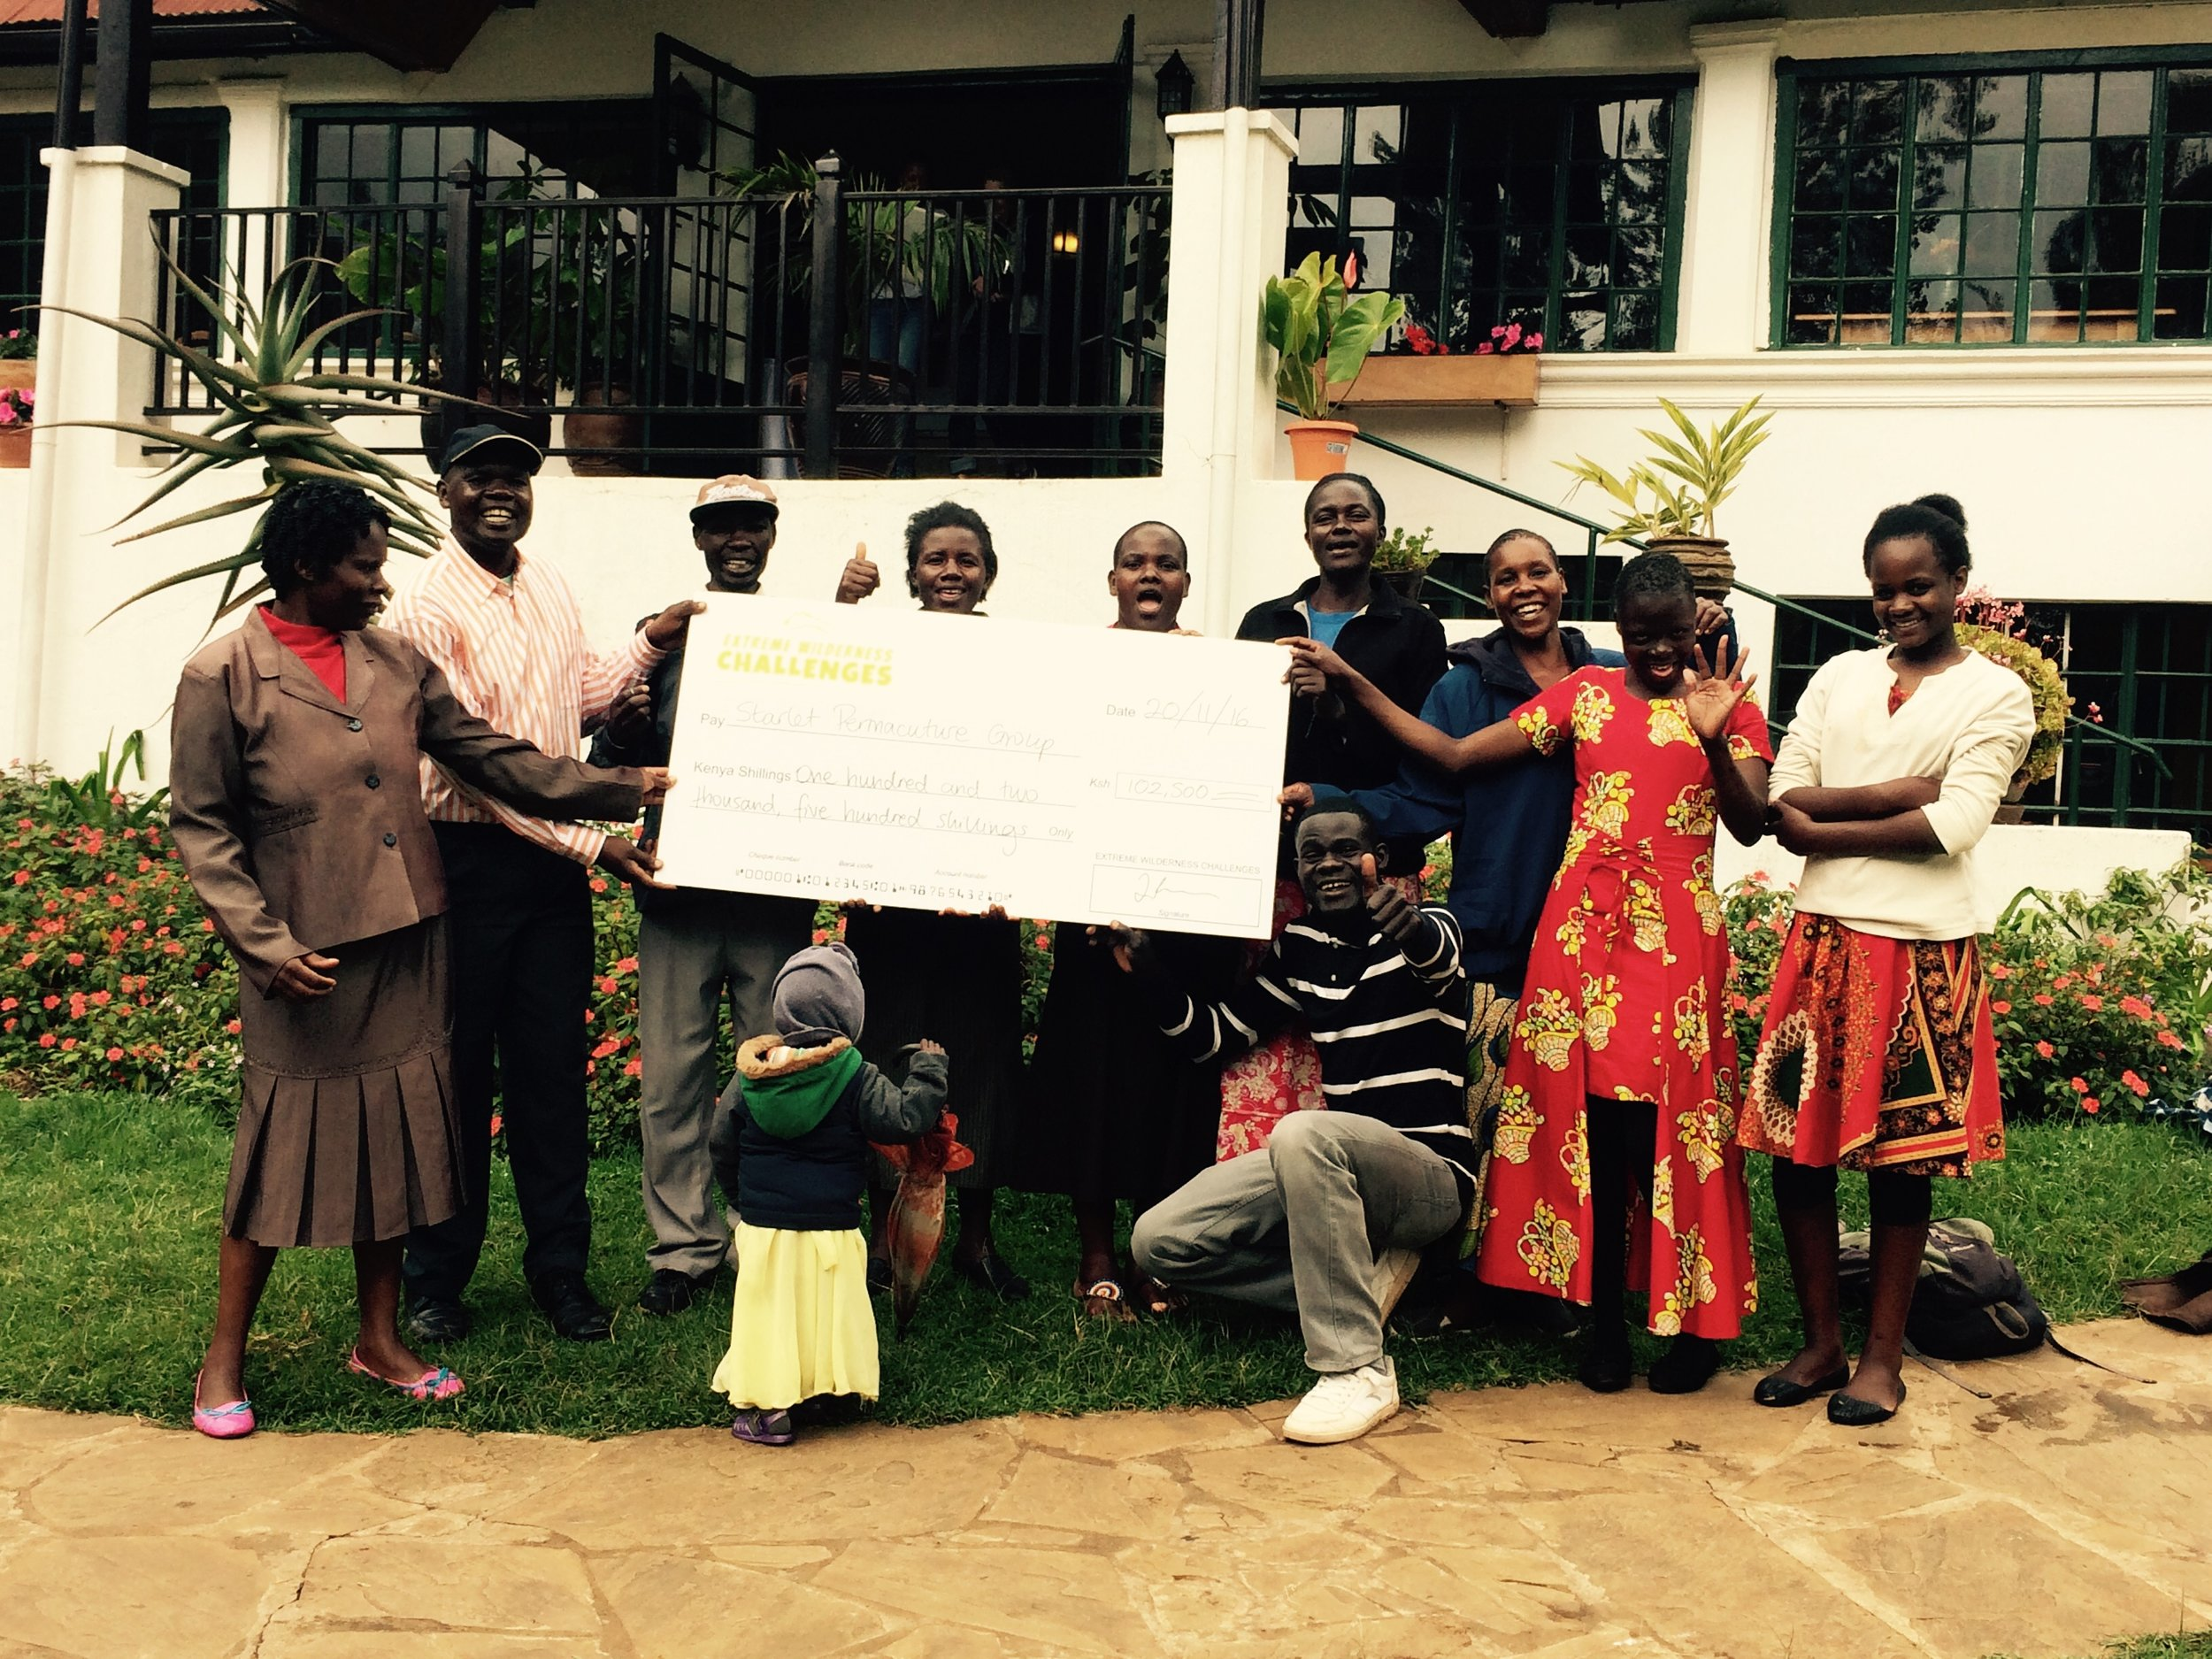 Above: Our Kangemi parent work team holding a cheque for 100,000/- from a fundraising race held in Tigoni last October. The funds were used to purchase seed, grafted seedlings boleya (manure) and new tools.